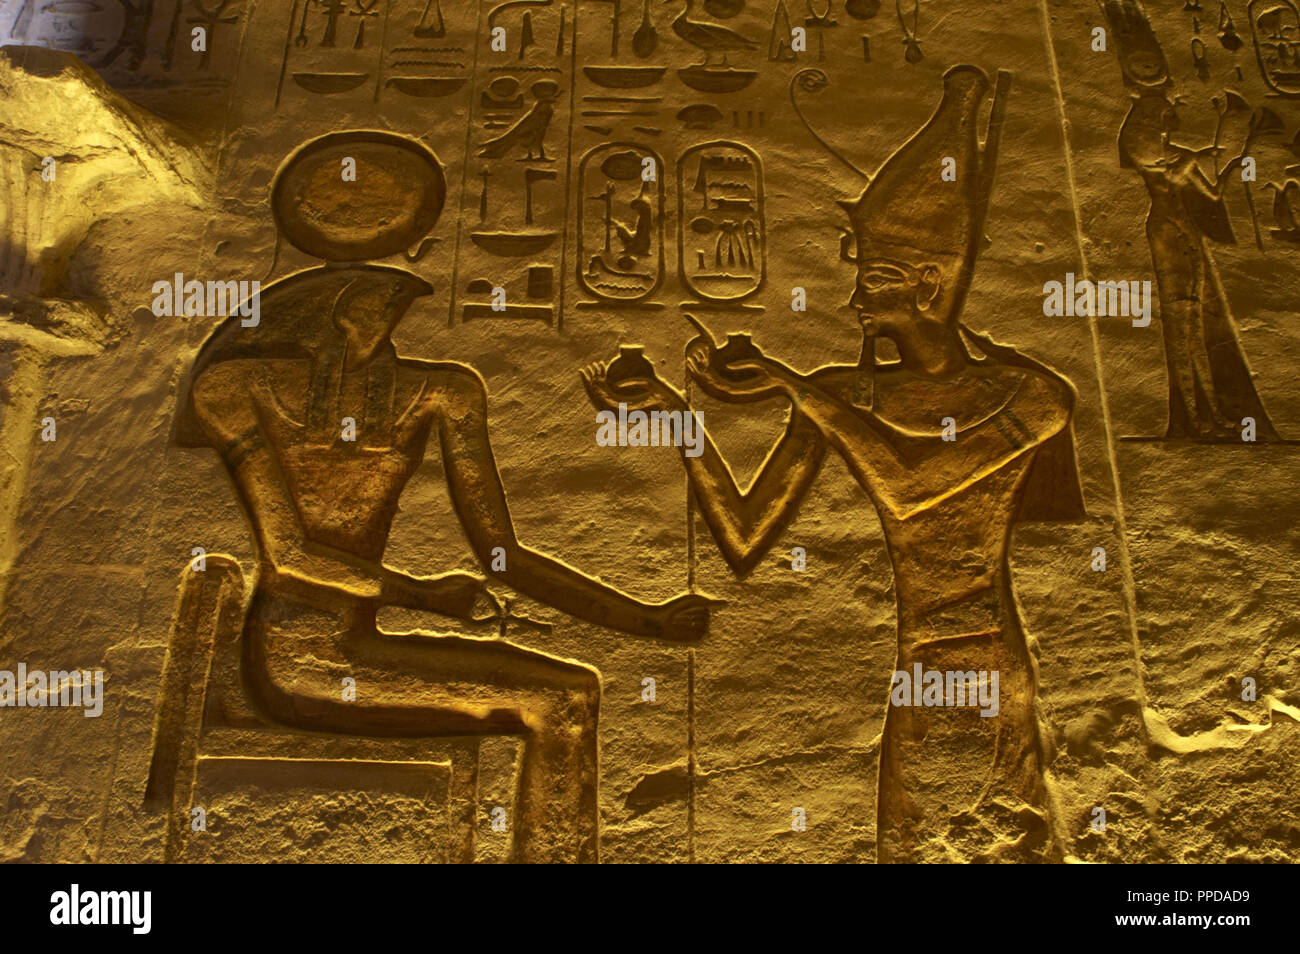 Egyptian art. Great Temple of Ramses II. 19th Dynasty. Relief depicting the pharaoh Ramses II making an offering to god Ra. 19th Dynasty. New Kingdom. Abu Simbel. Egypt. Stock Photo